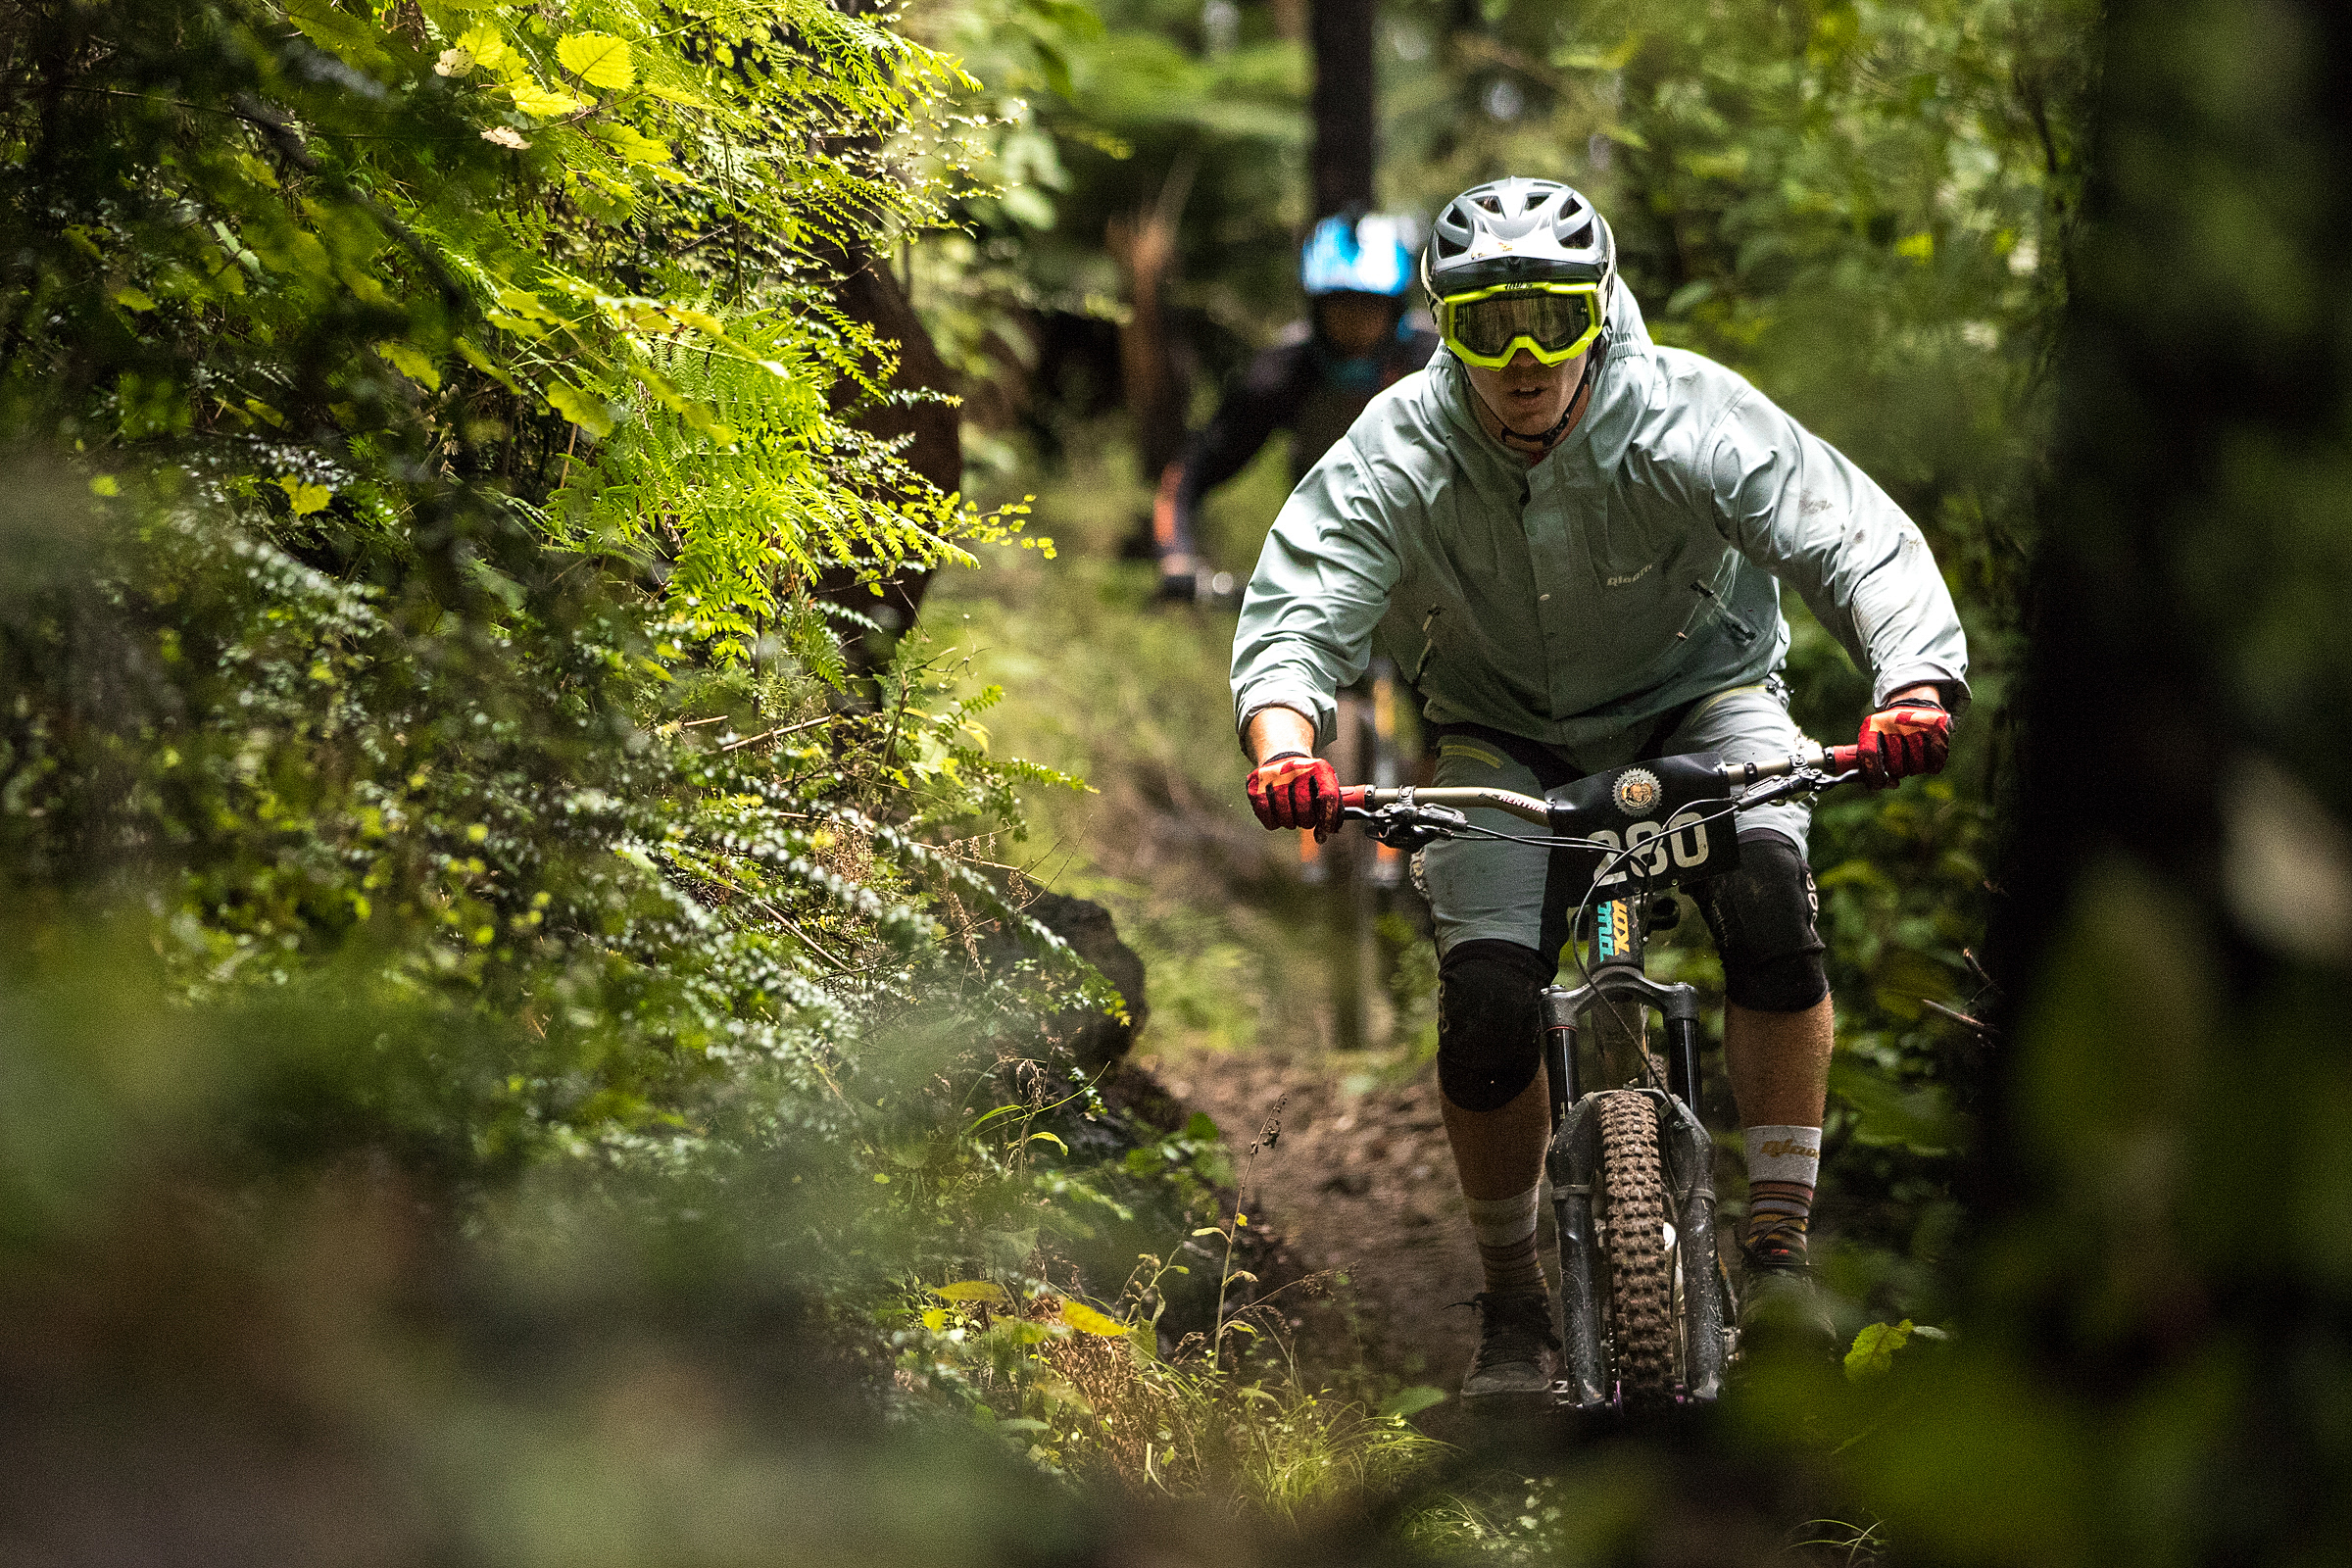 Despite all the rain, some sections of trail were riding great as the traffic rode in a line. Photo: Odin Woods.